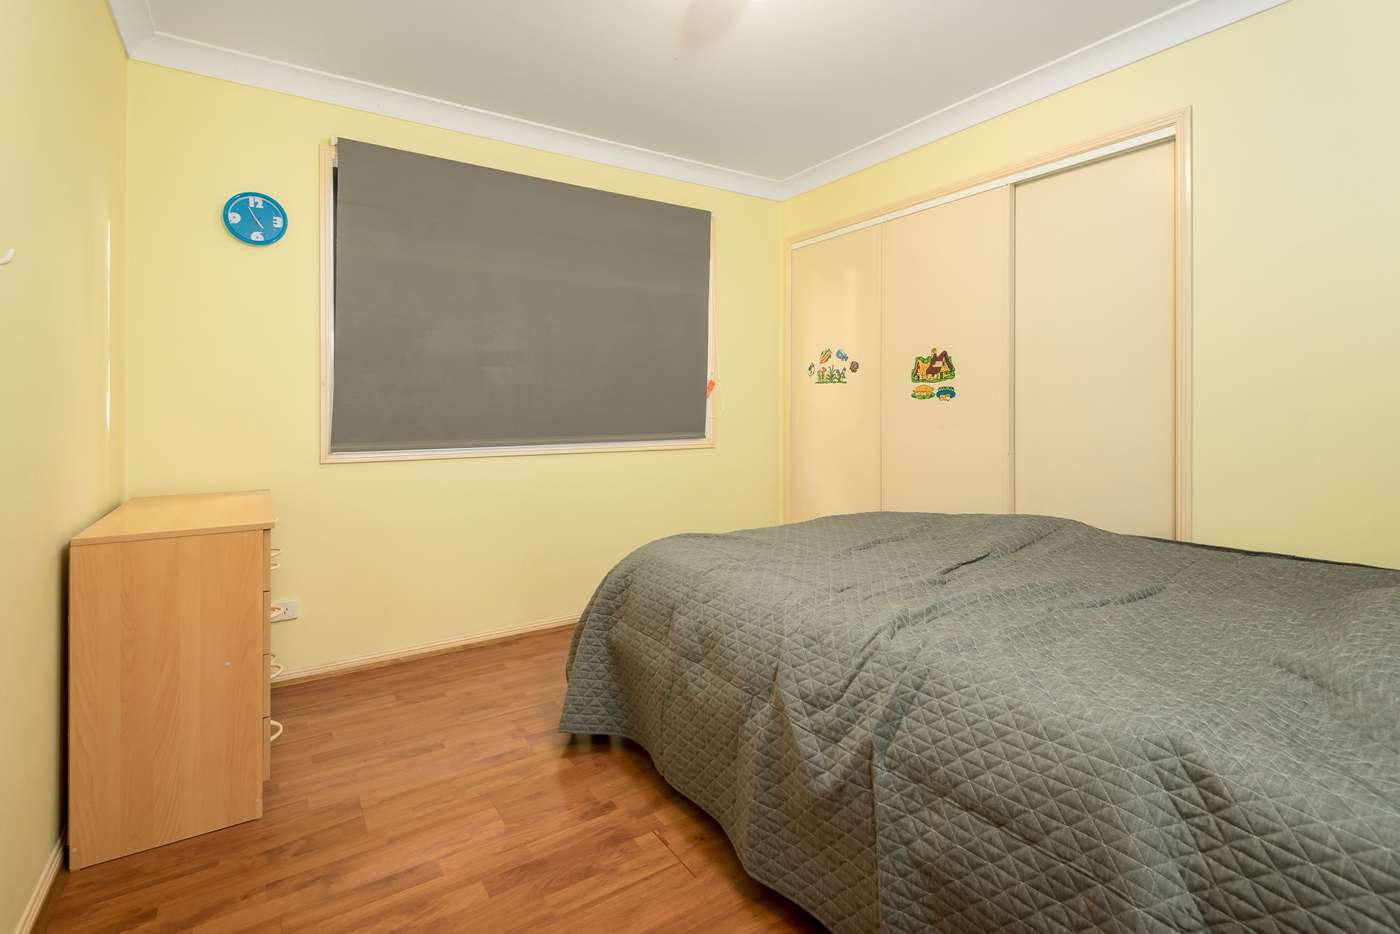 Sixth view of Homely house listing, 148 Rubicon Crescent, Kuraby QLD 4112